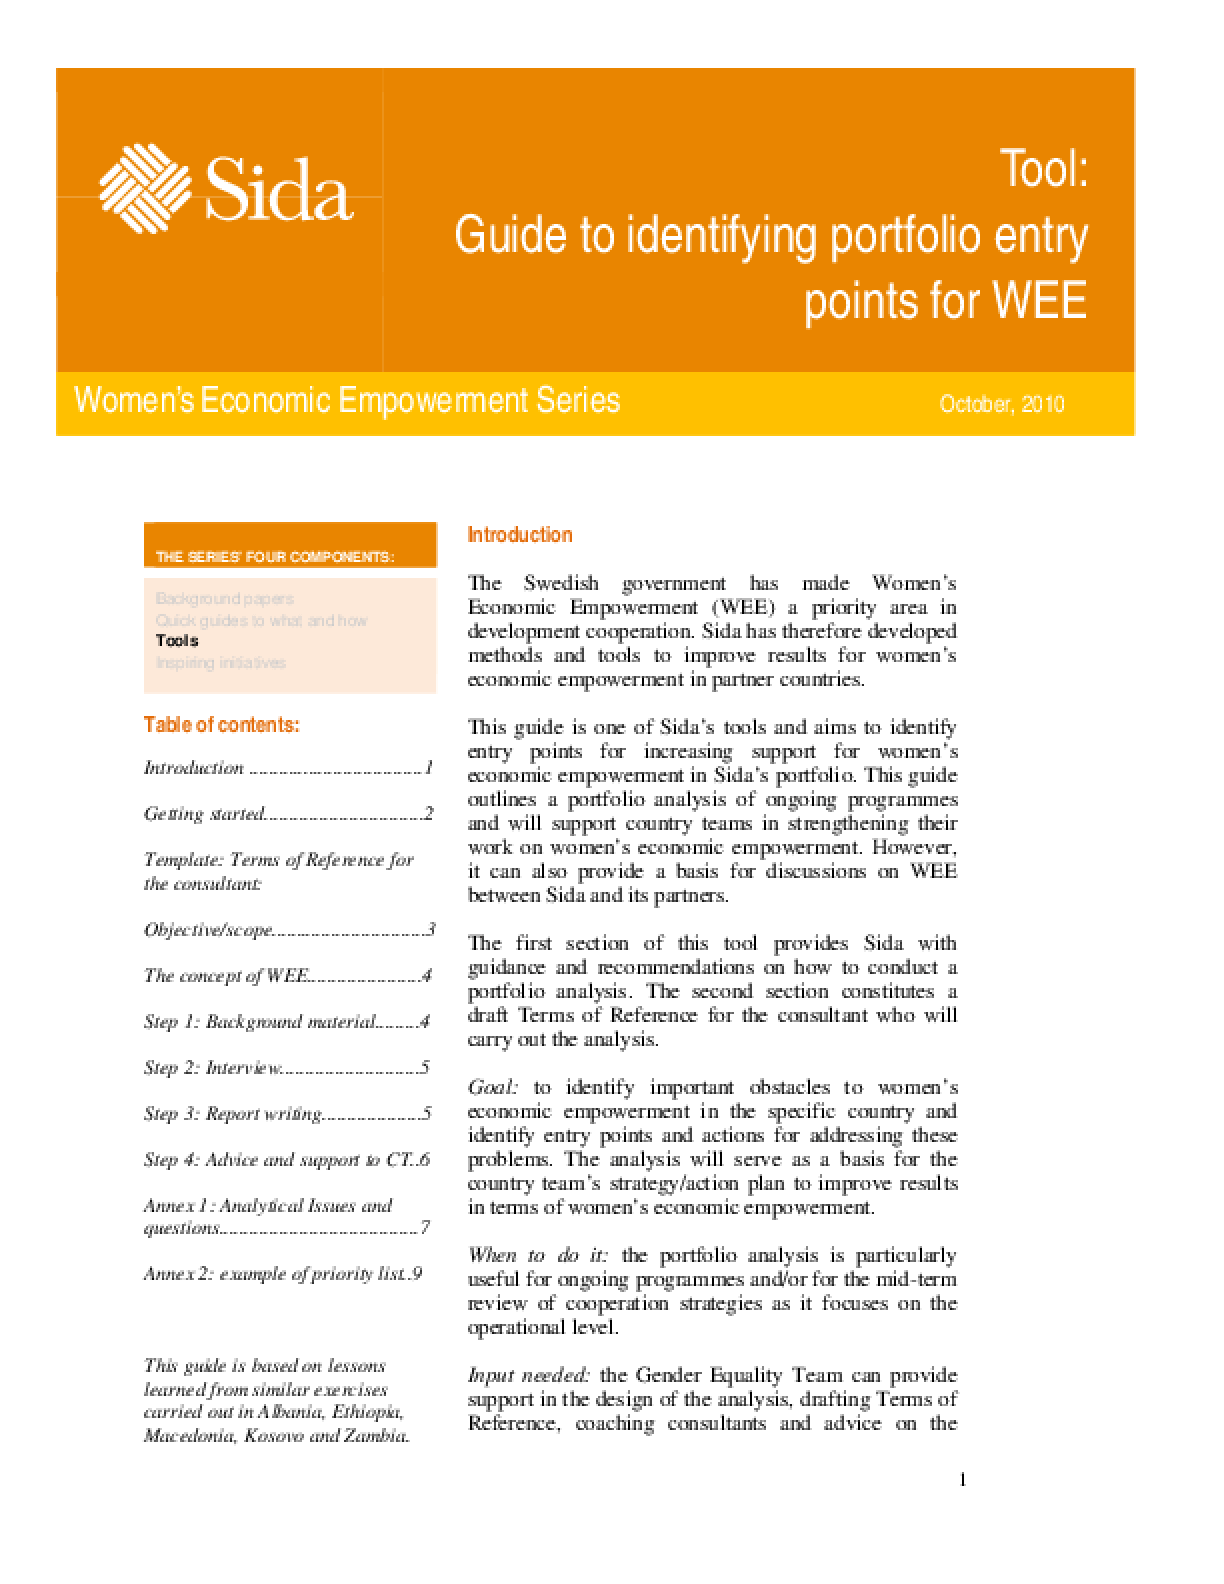 Guide to identifying portfolio entry points for WEE